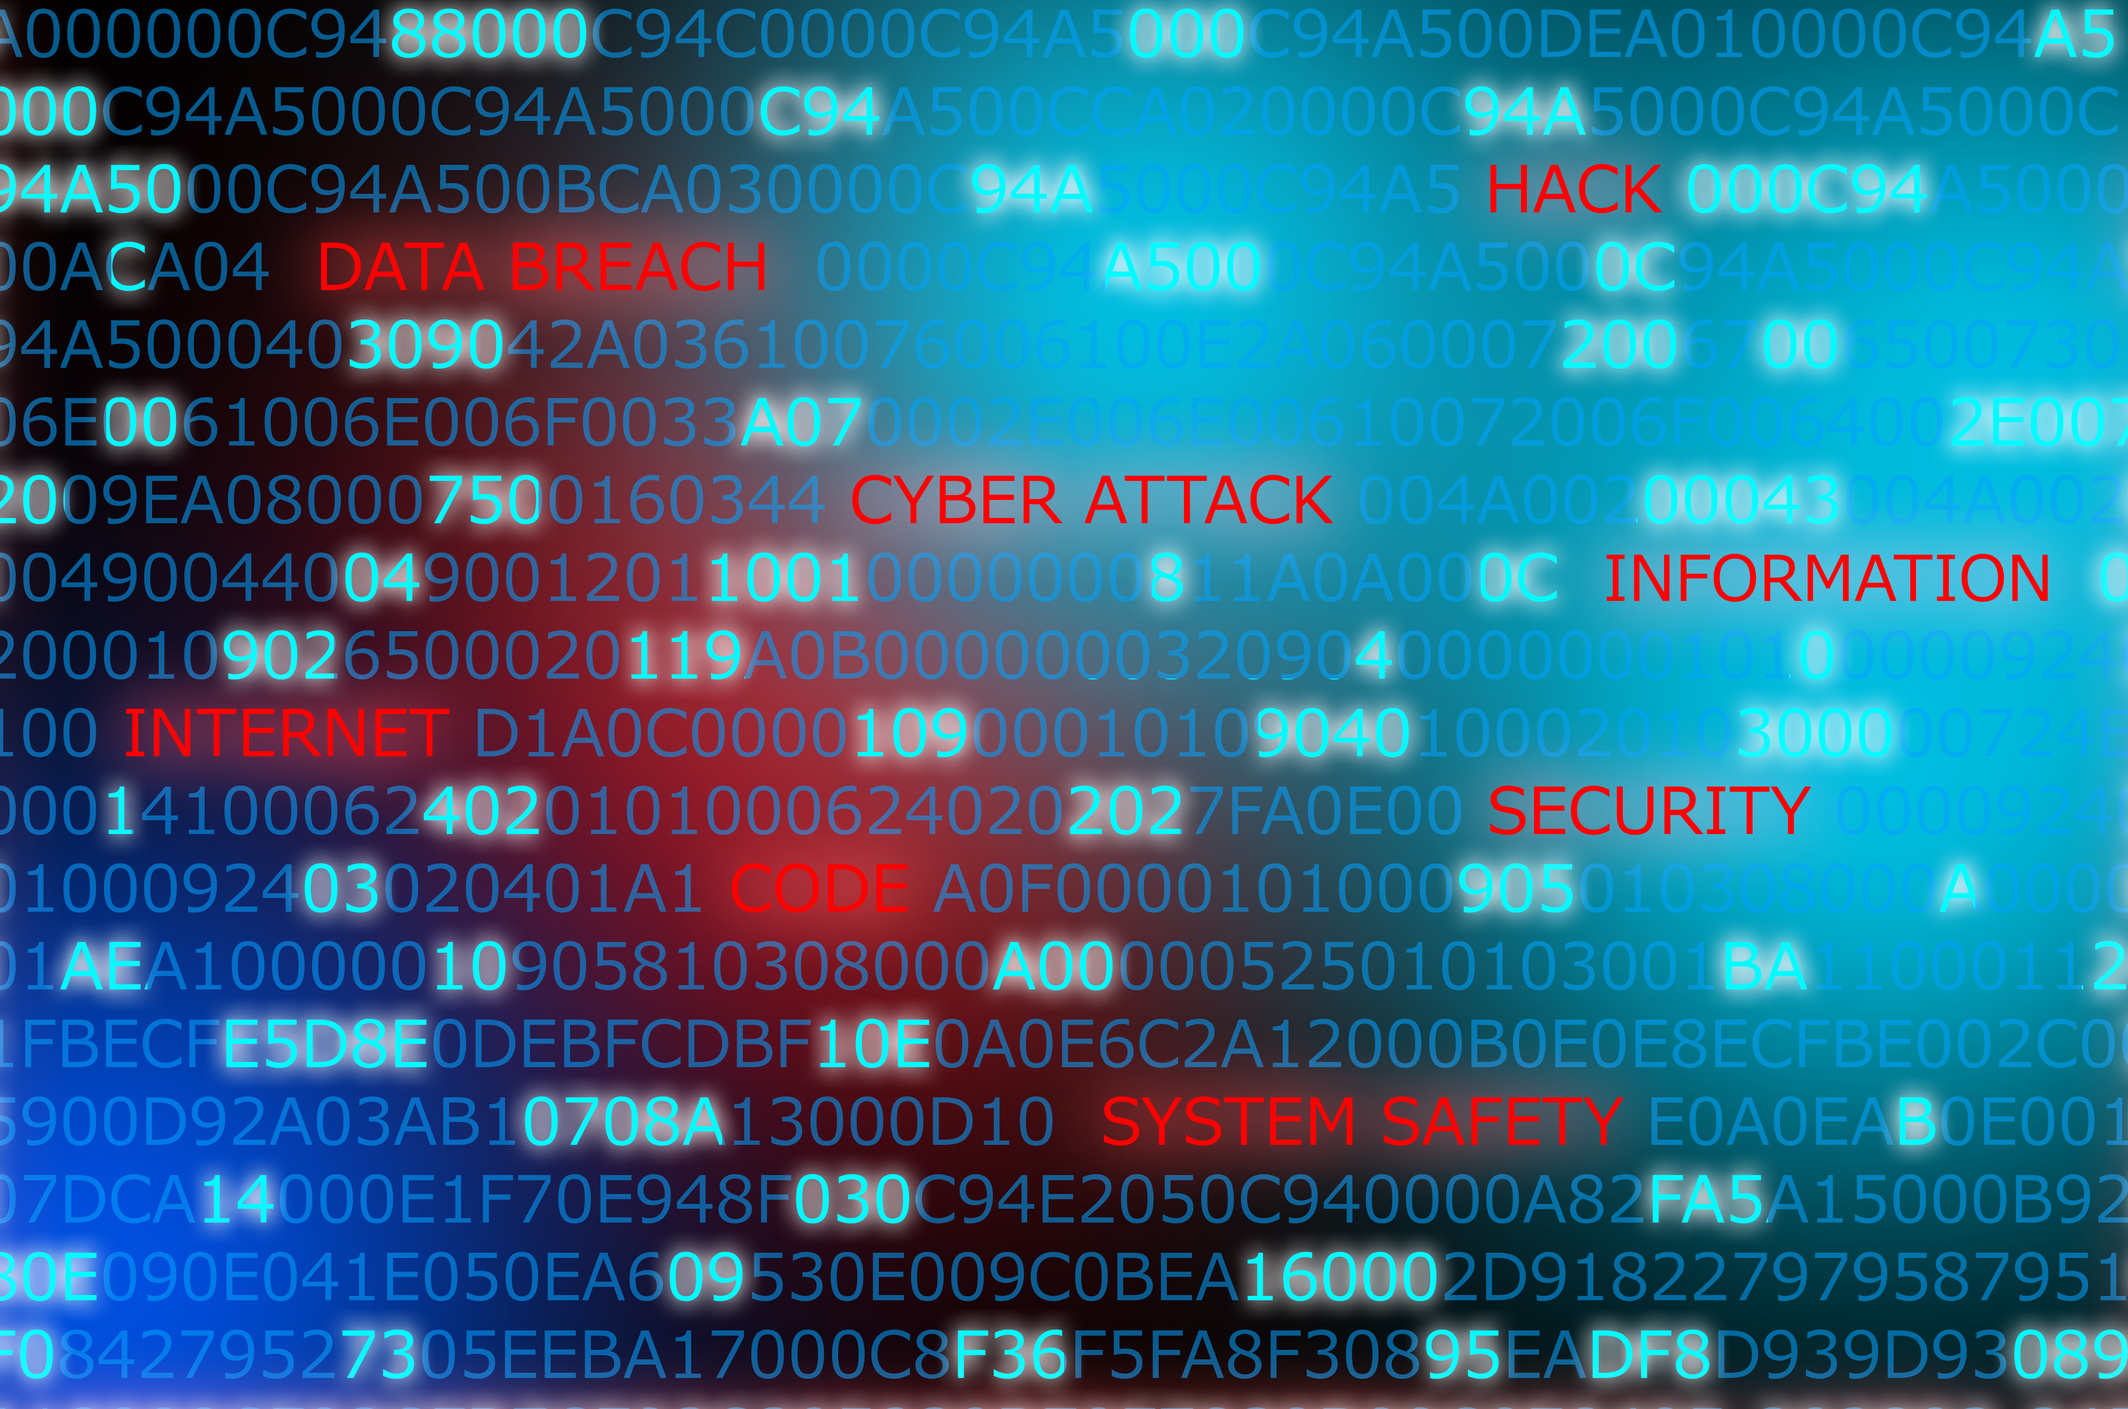 Business technology company struck by ransomware attack